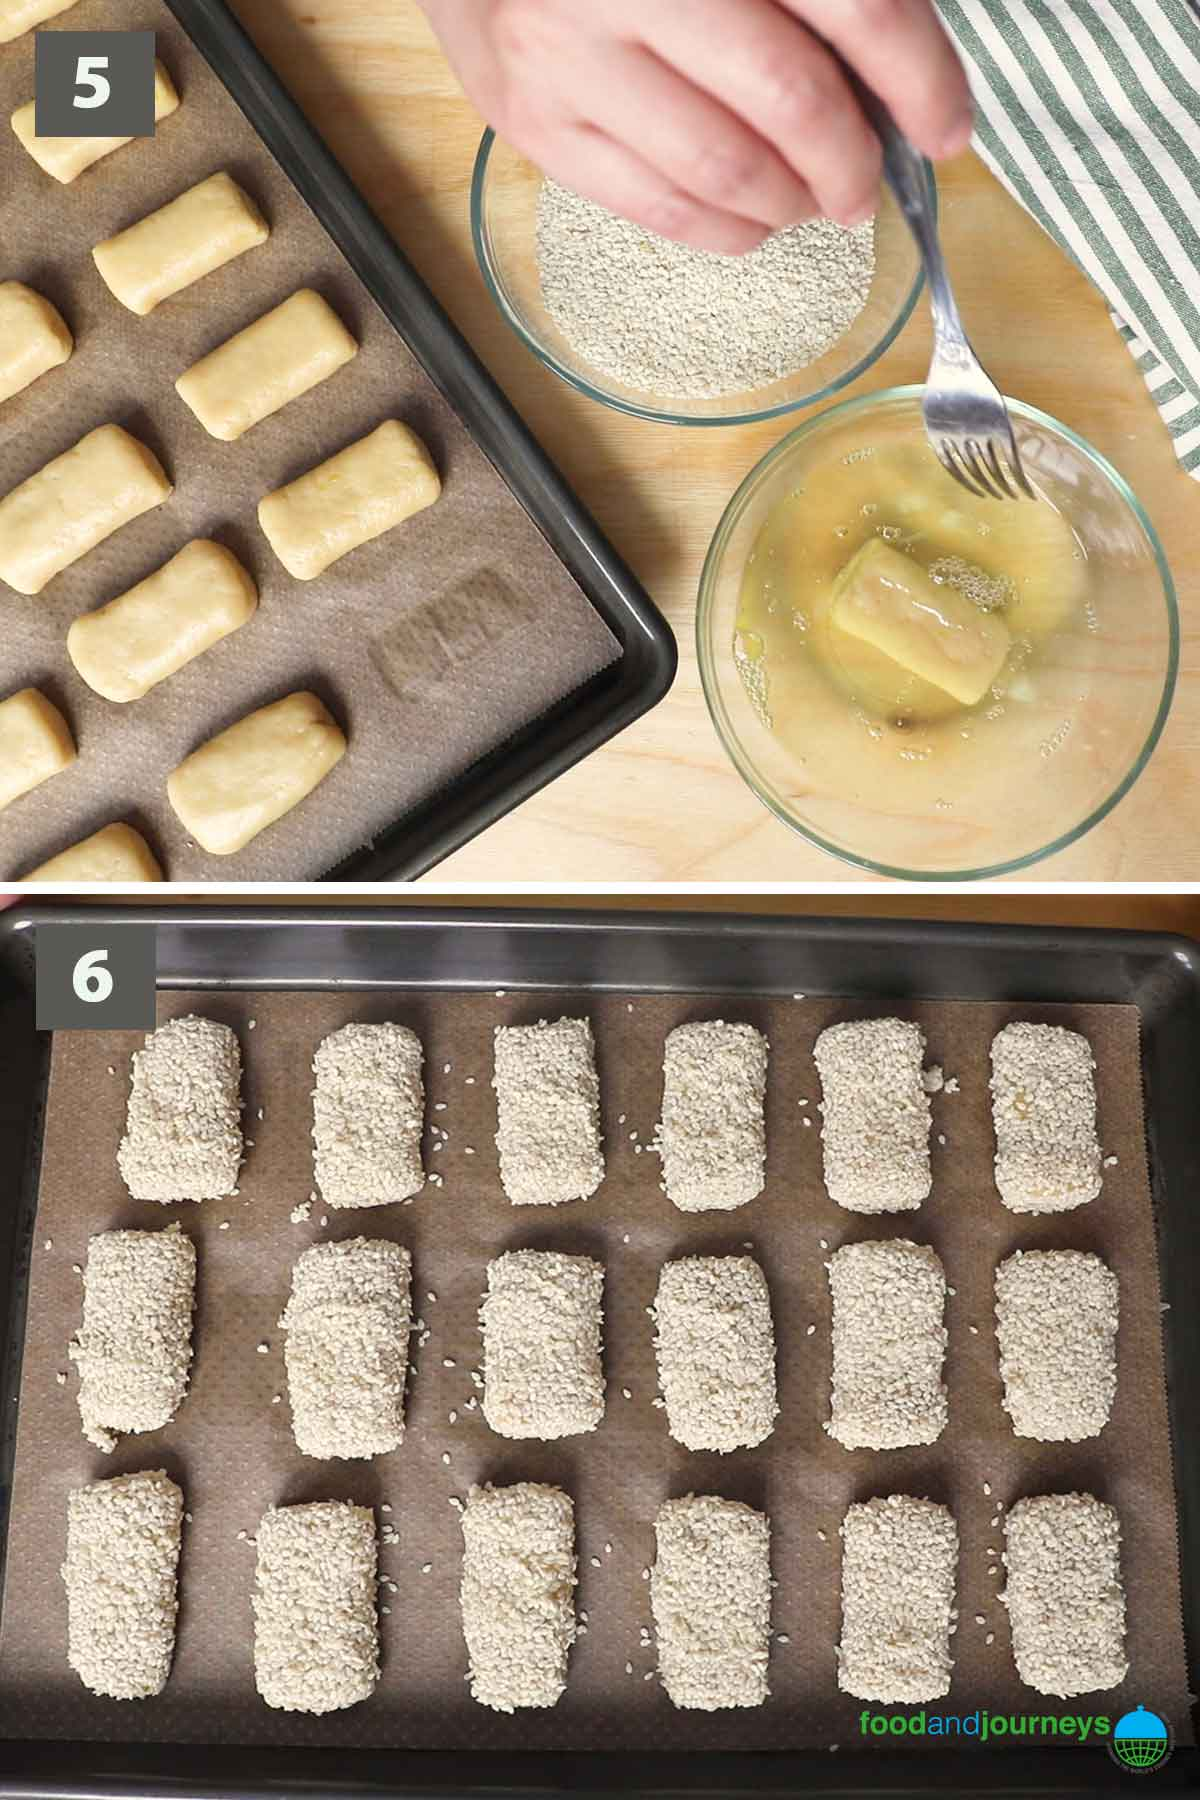 Second part of a collage of images showing the step by step process on how to make Italian sesame cookies.